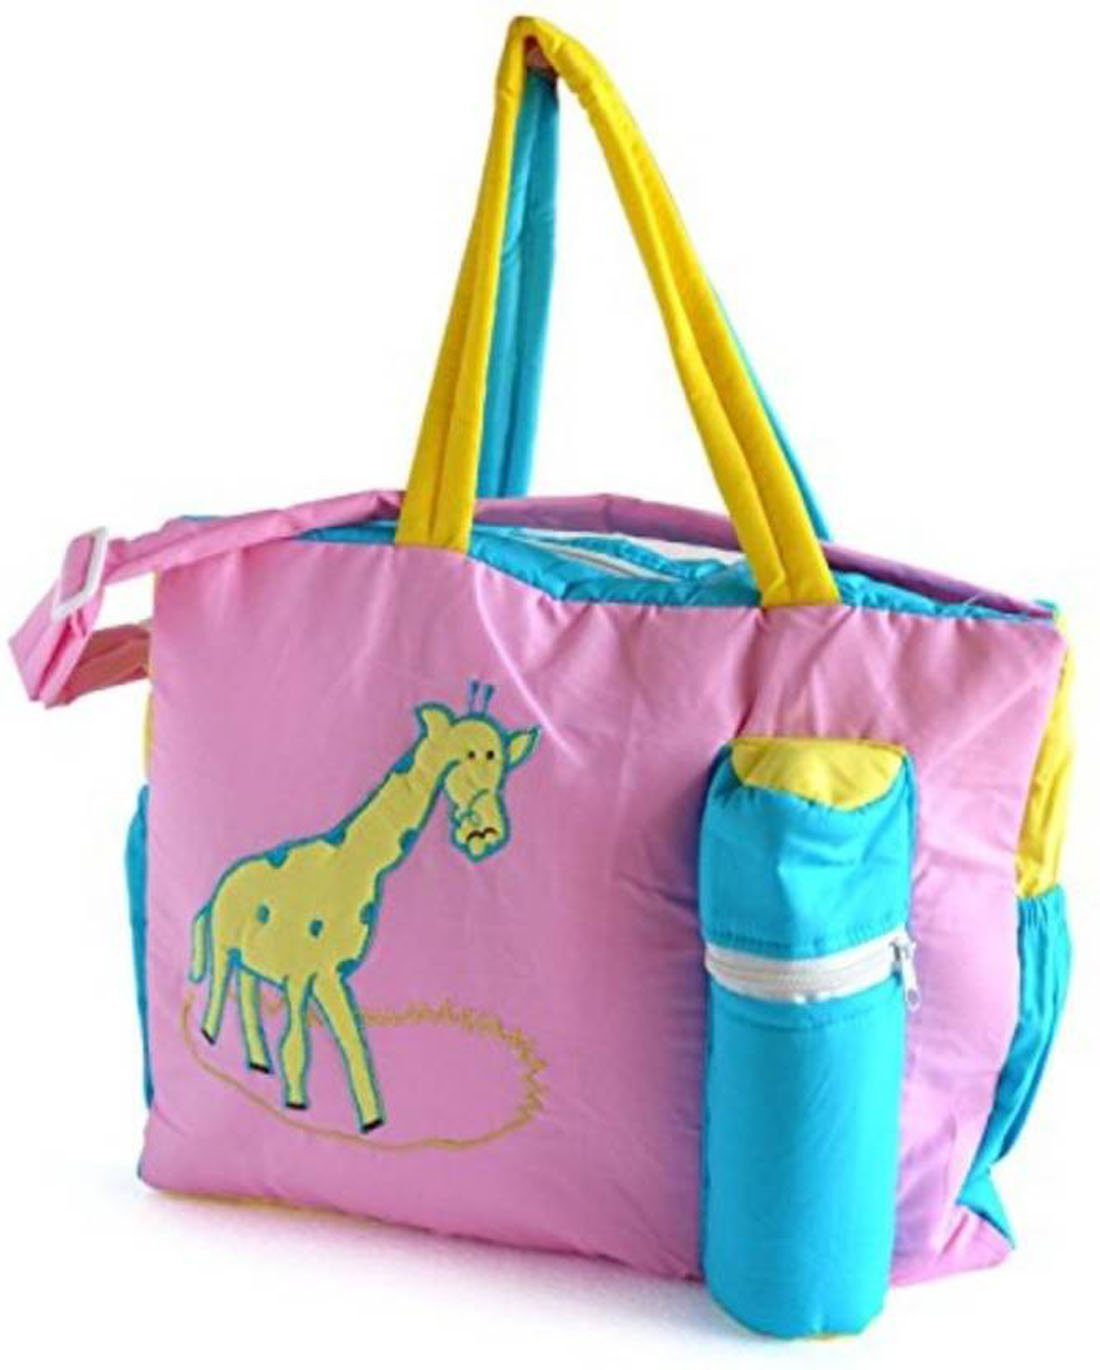 404f2454c5 Buy Poddar Fashion Square Krishnam Cotton Fabric New-Born Baby Multipurpose Nappy  Bag with Holder - (Giraffe Pink) Online at Low Prices in India - Amazon.in